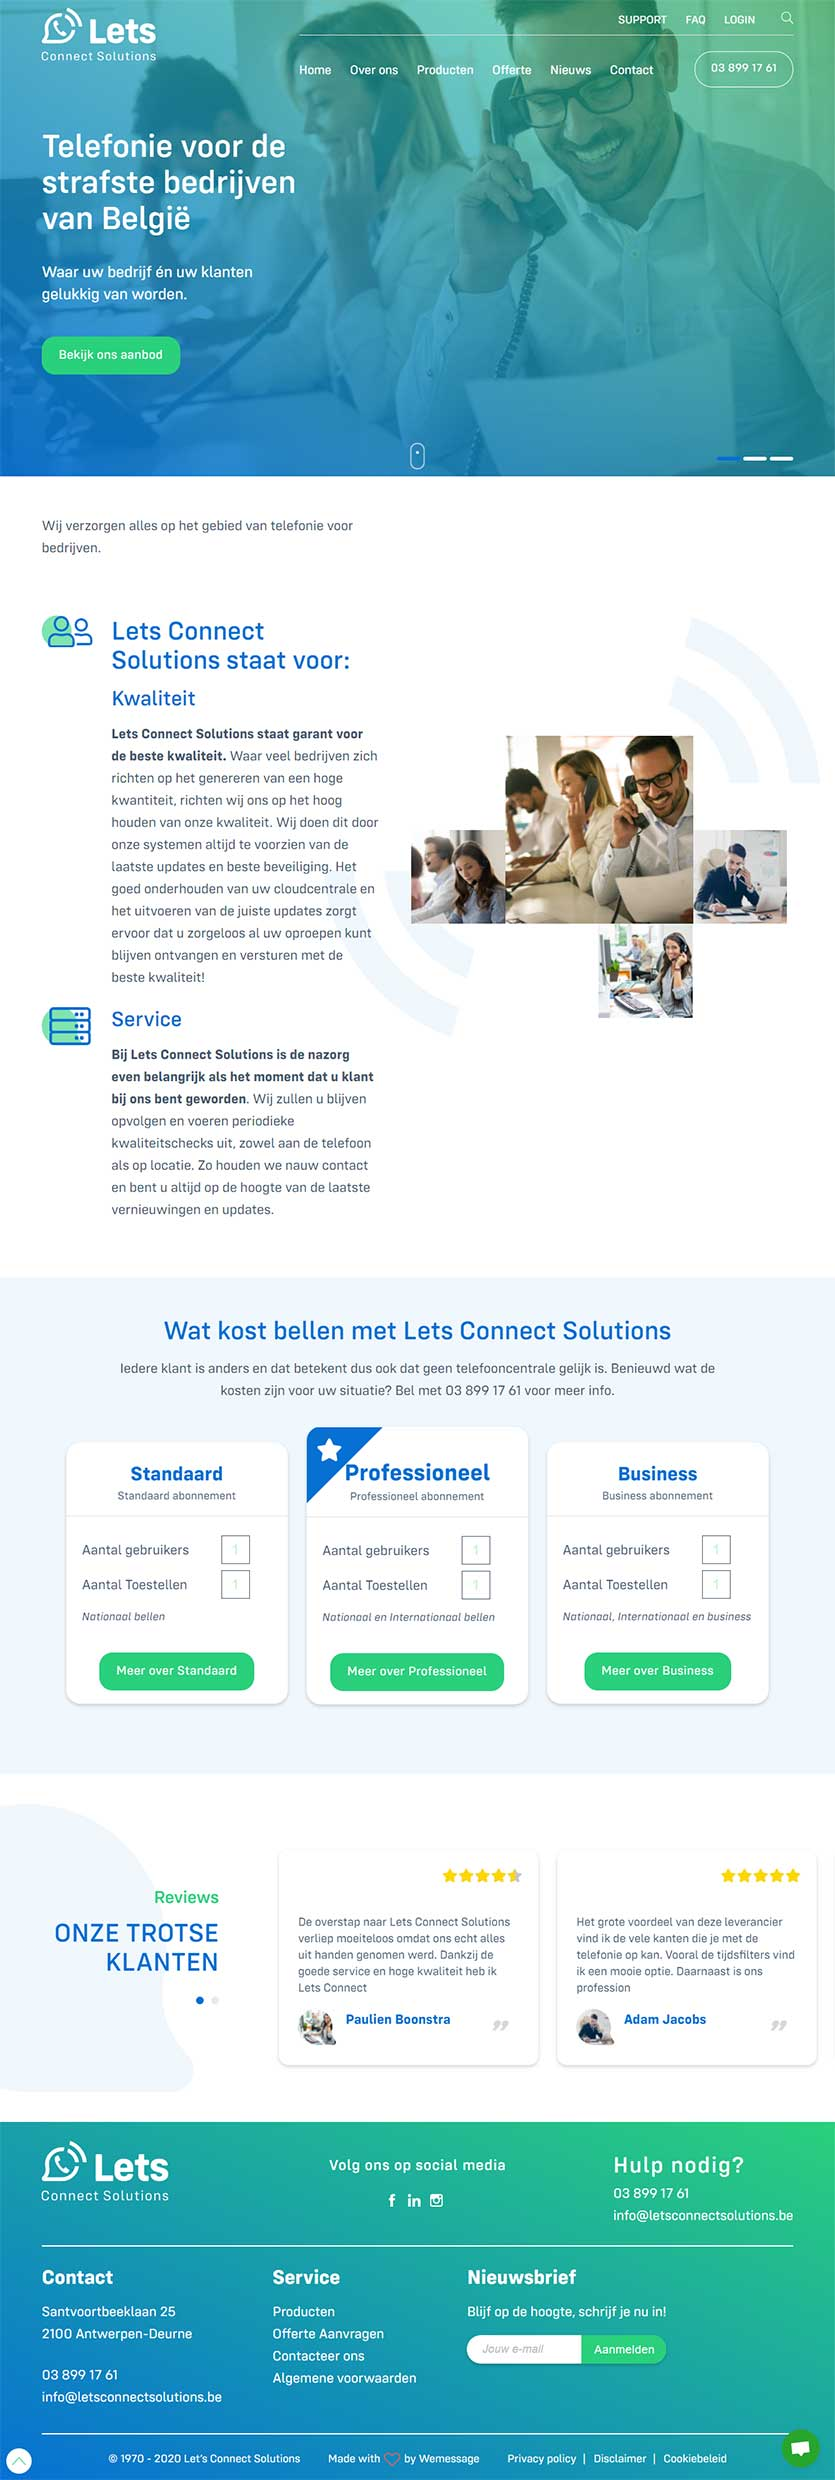 Let's Connect Solutions website voorbeeld op laptops